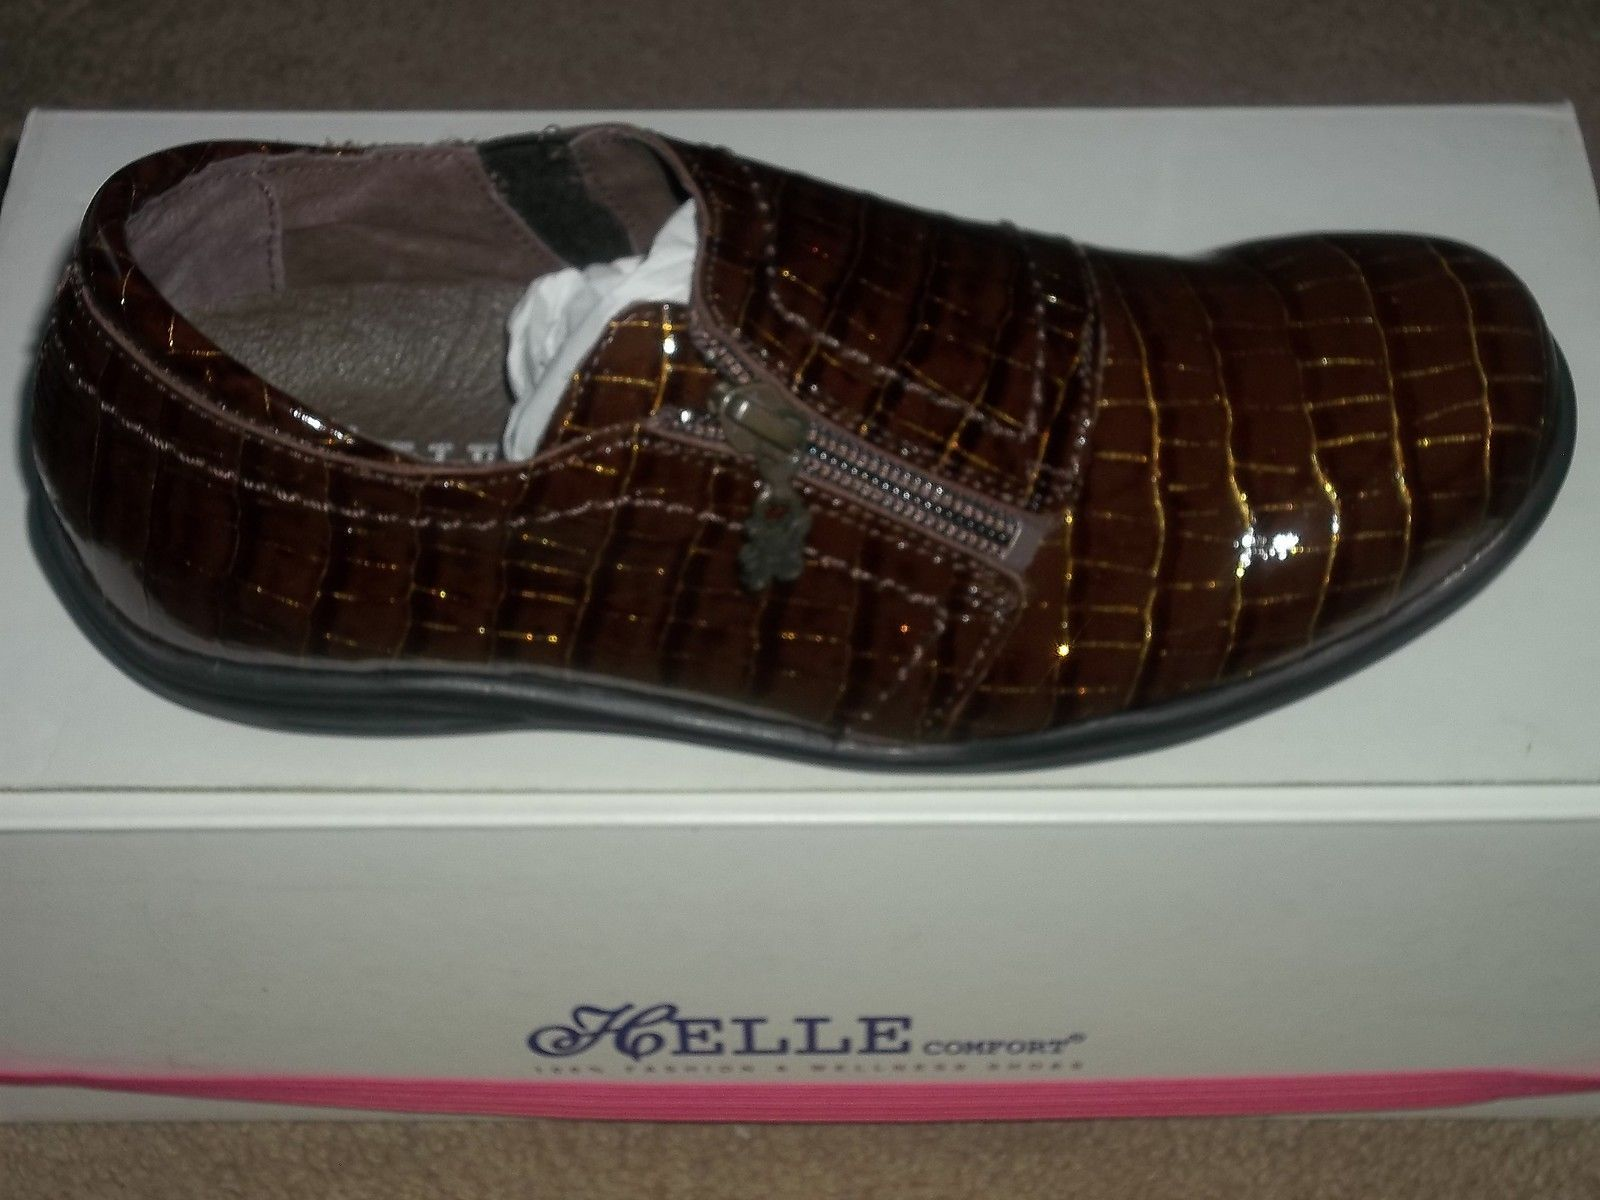 Helle Comfort Shoes Uk